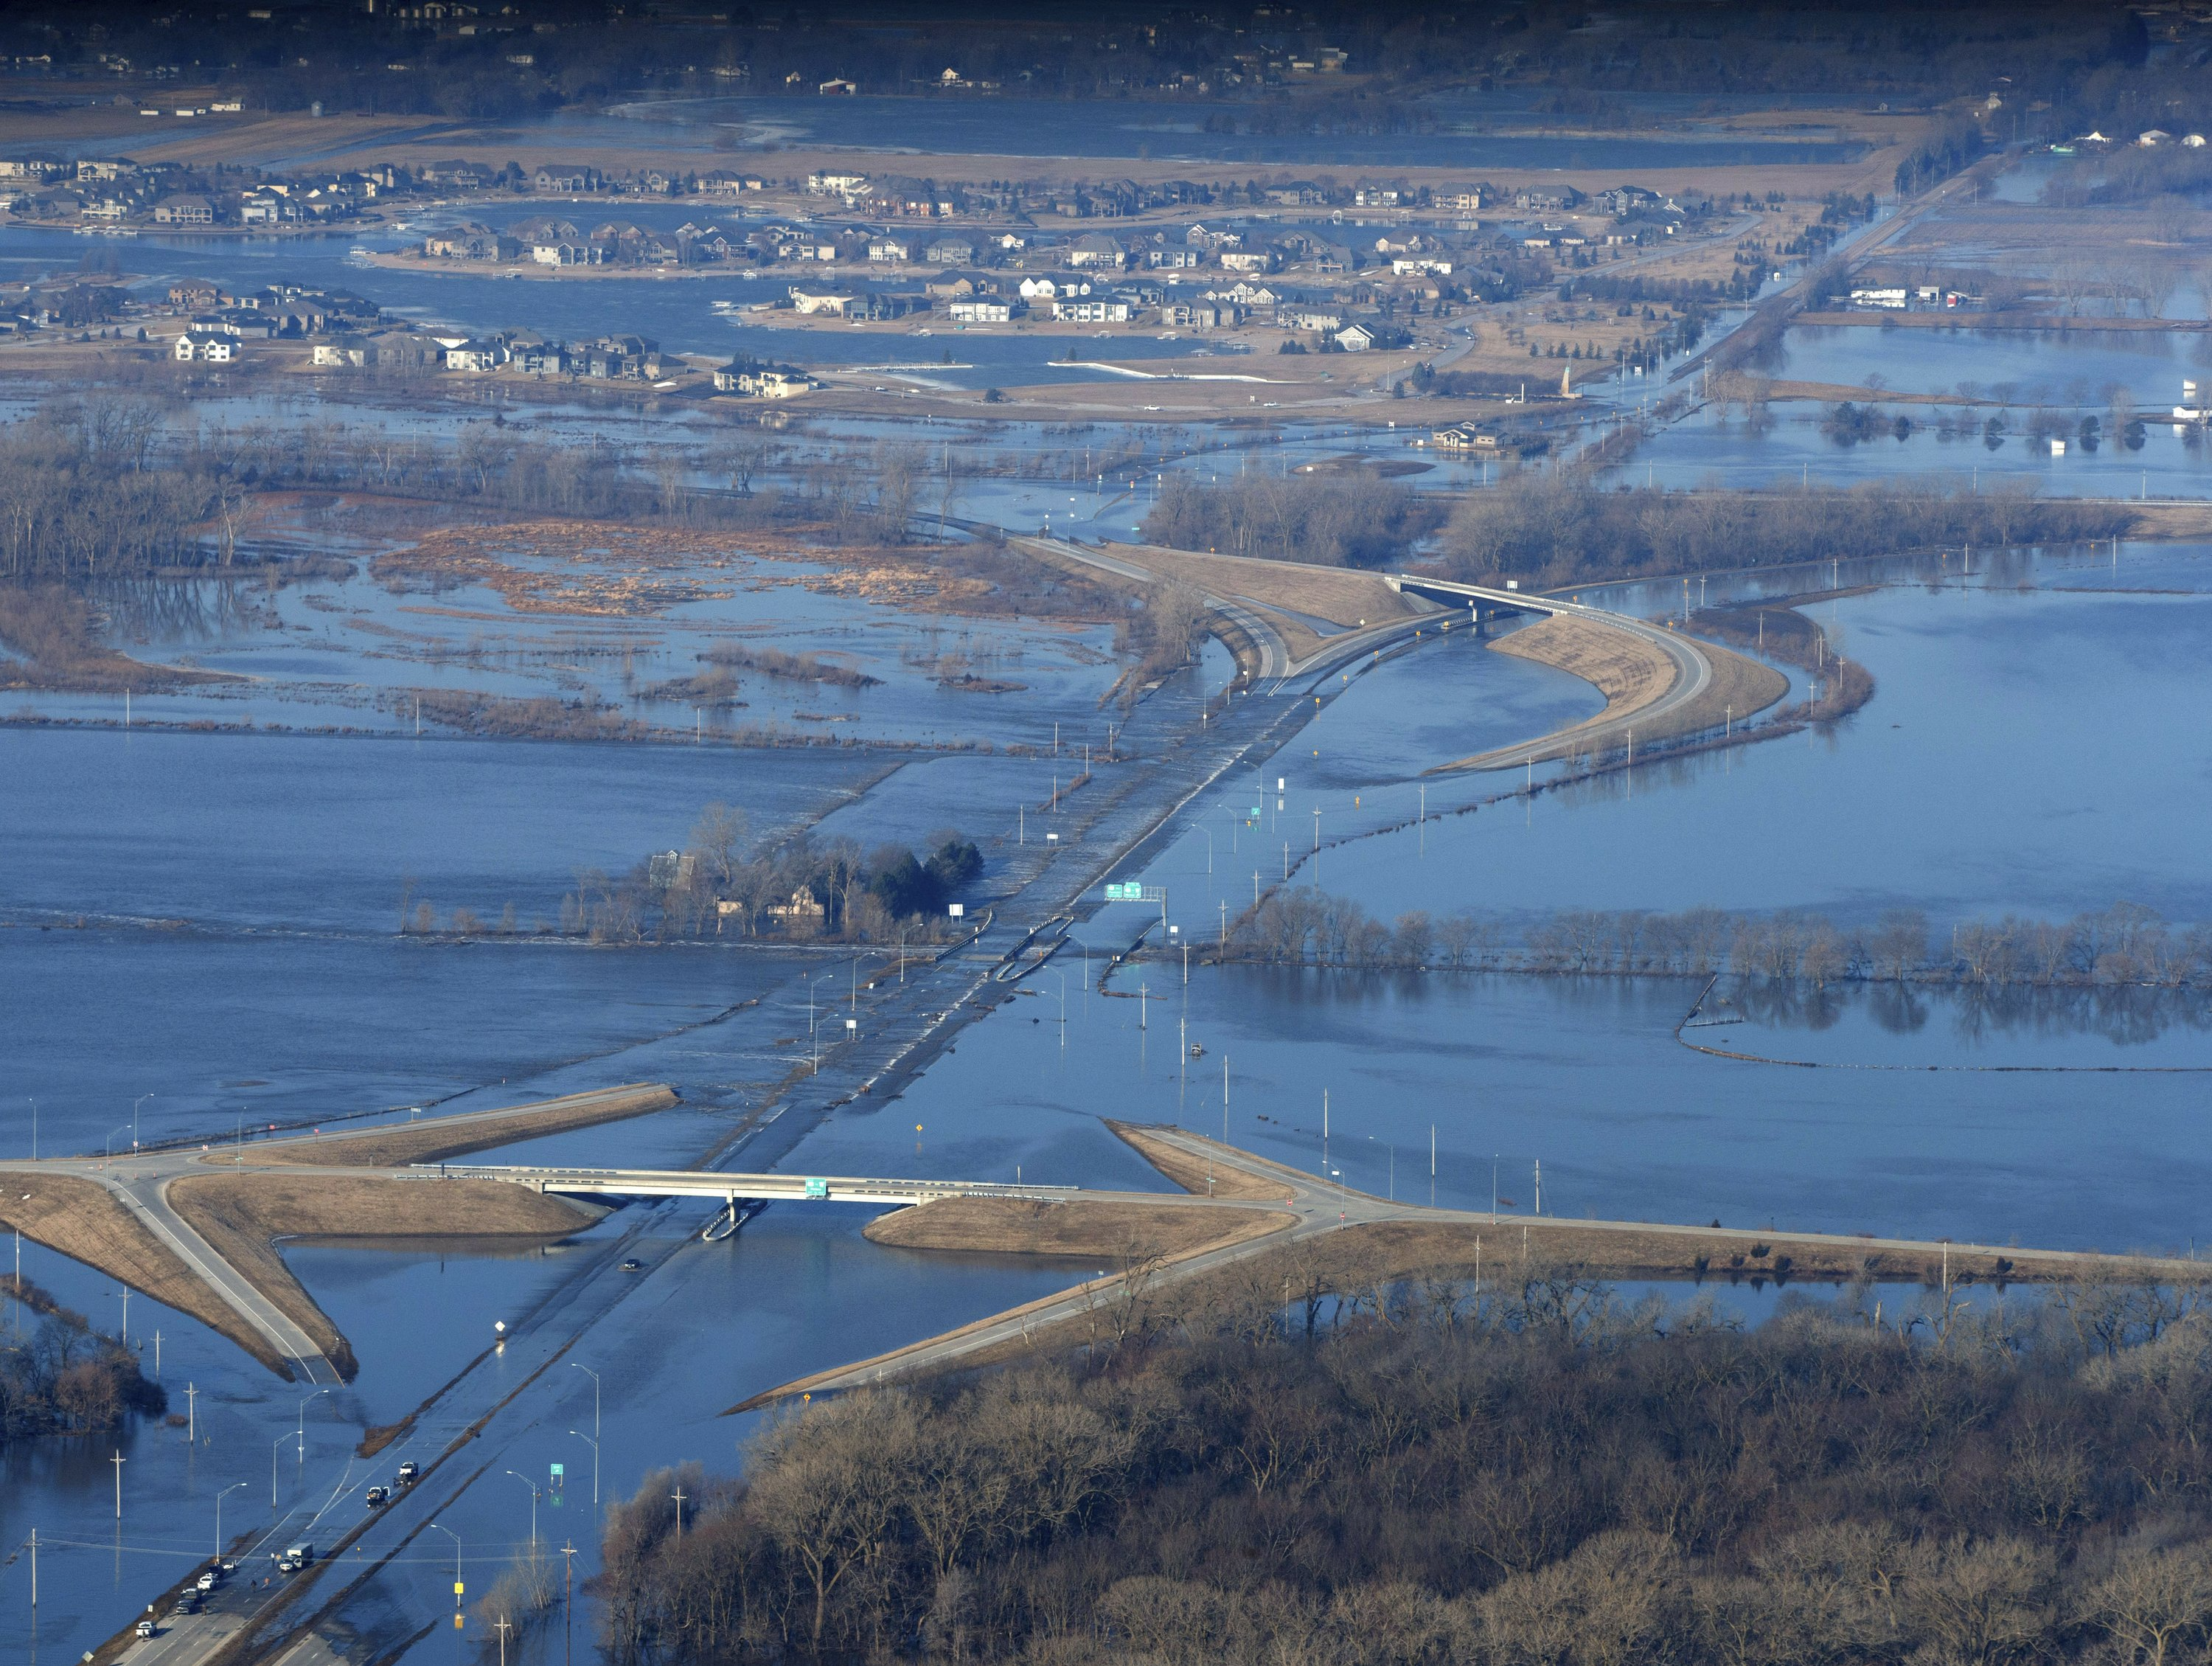 More evacuations in Midwest as floodwaters head downstream